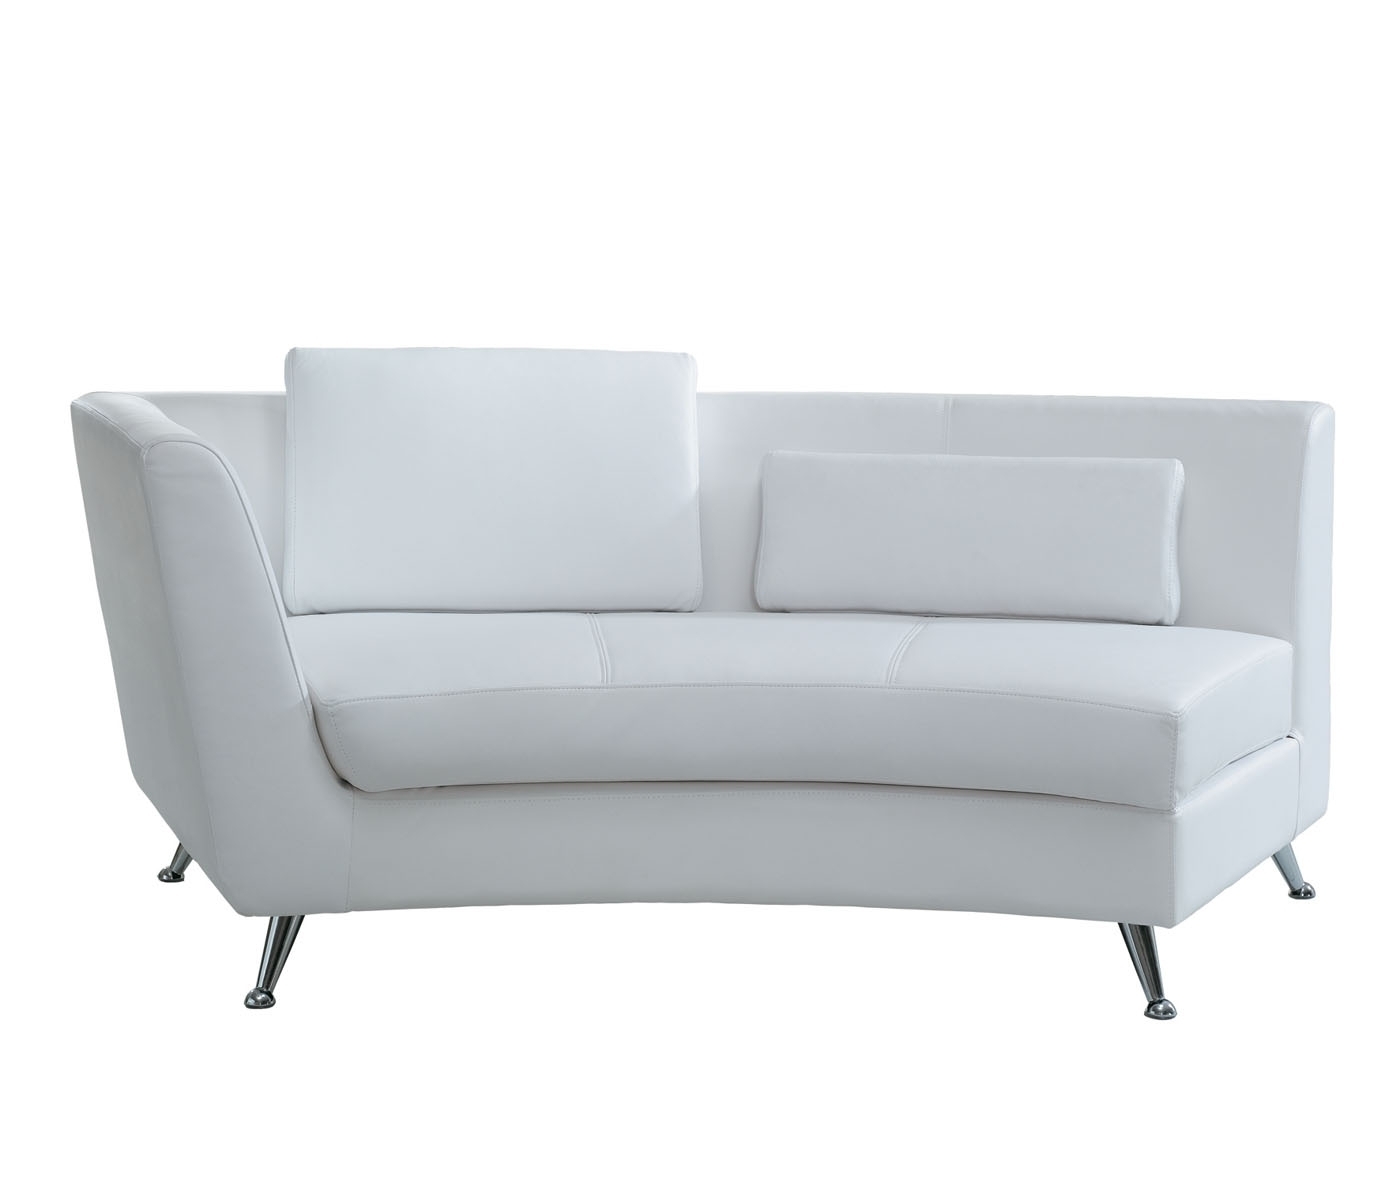 Most Recent White Leather Chaise Lounges Throughout Decoration In White Leather Chaise Lounge With White Leather (View 6 of 15)